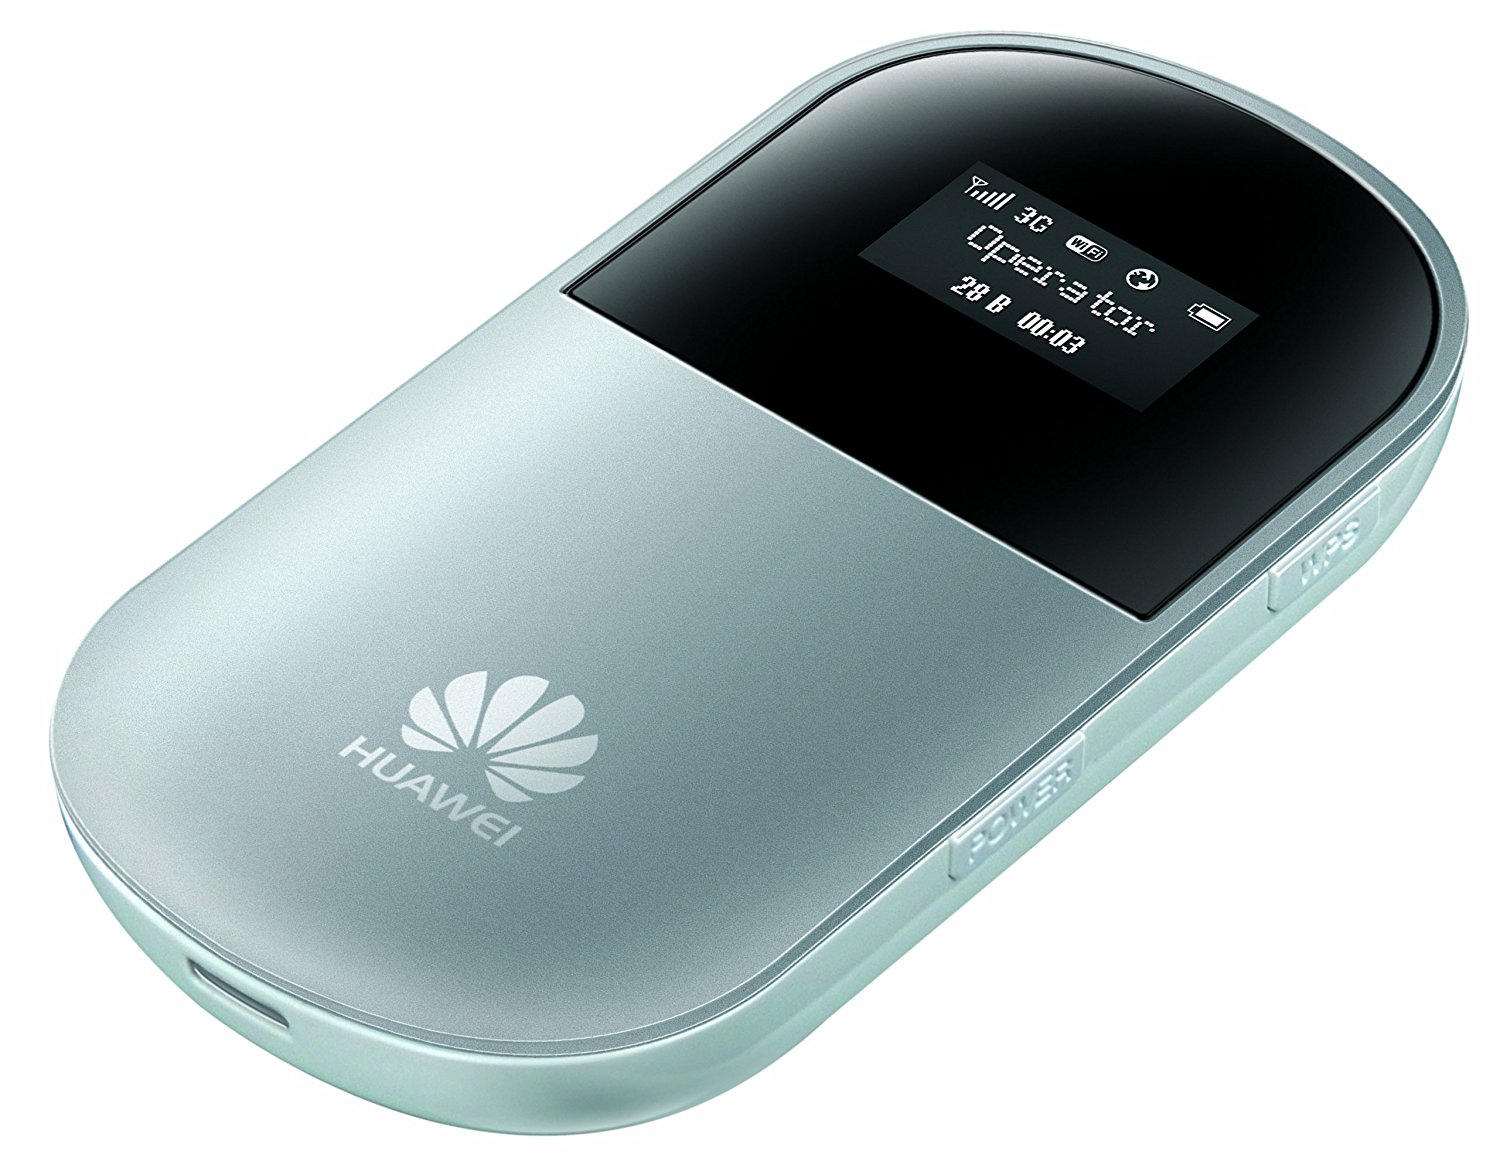 huawei e586 router modem portatile wifi 3g umts 21 mbps. Black Bedroom Furniture Sets. Home Design Ideas